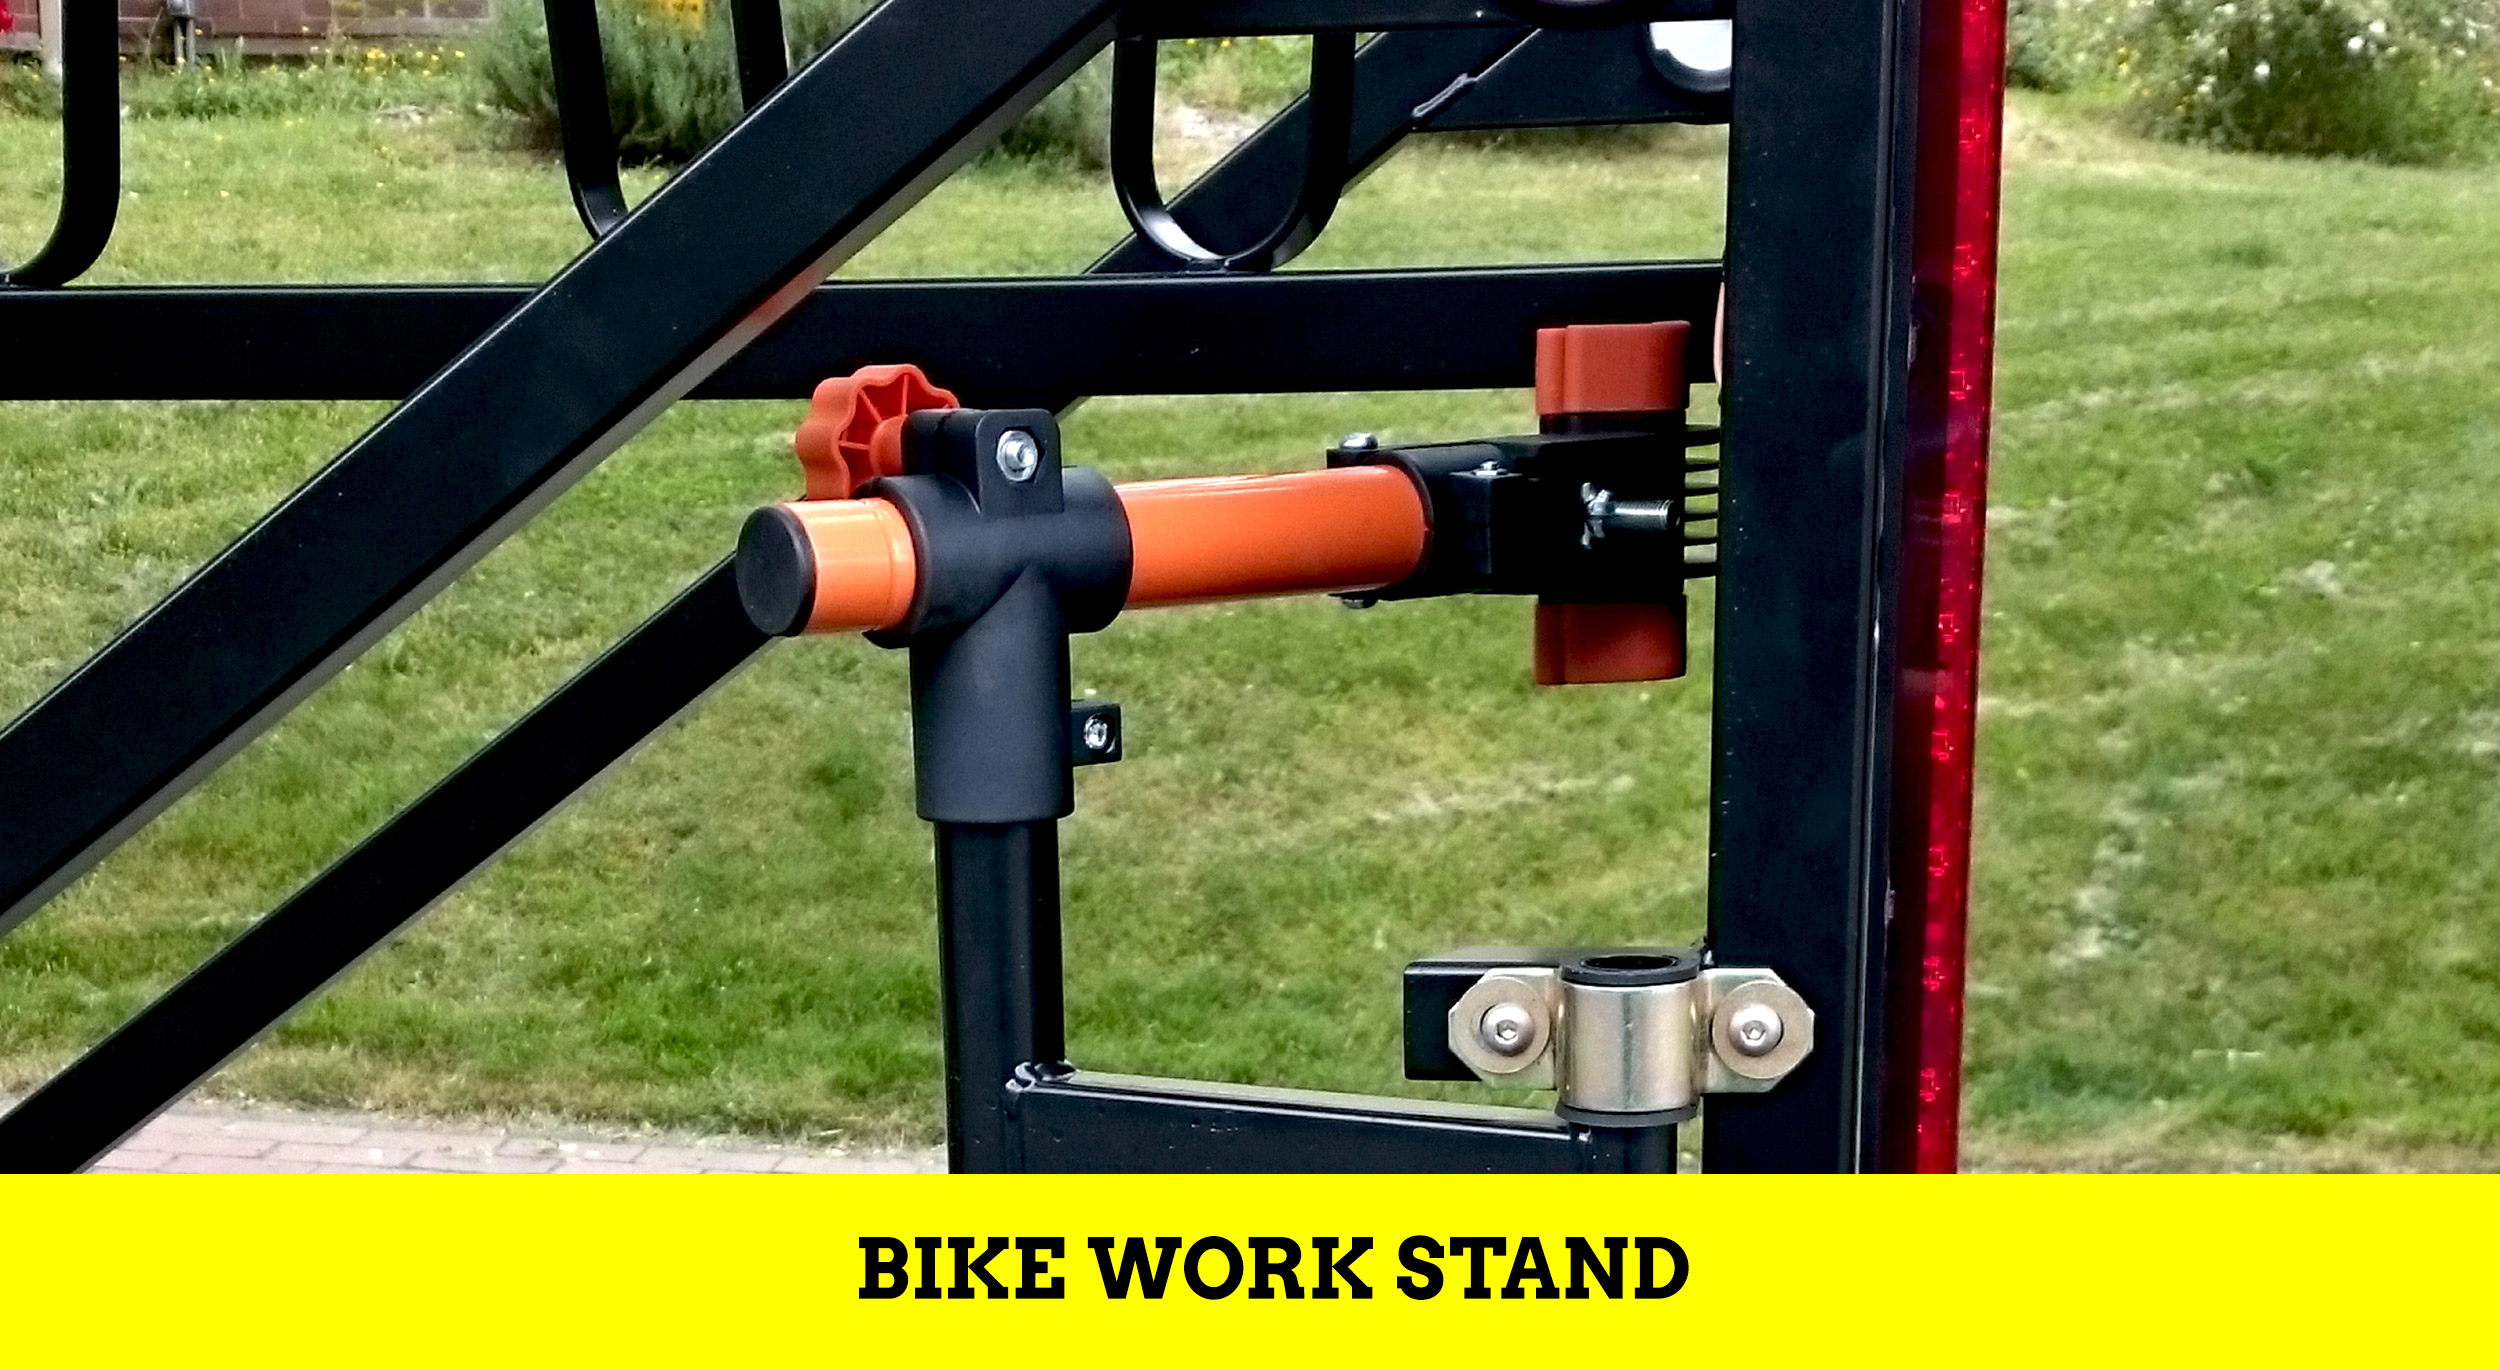 Huckwagons Mountain Bike Shuttle Trailer bike work stand